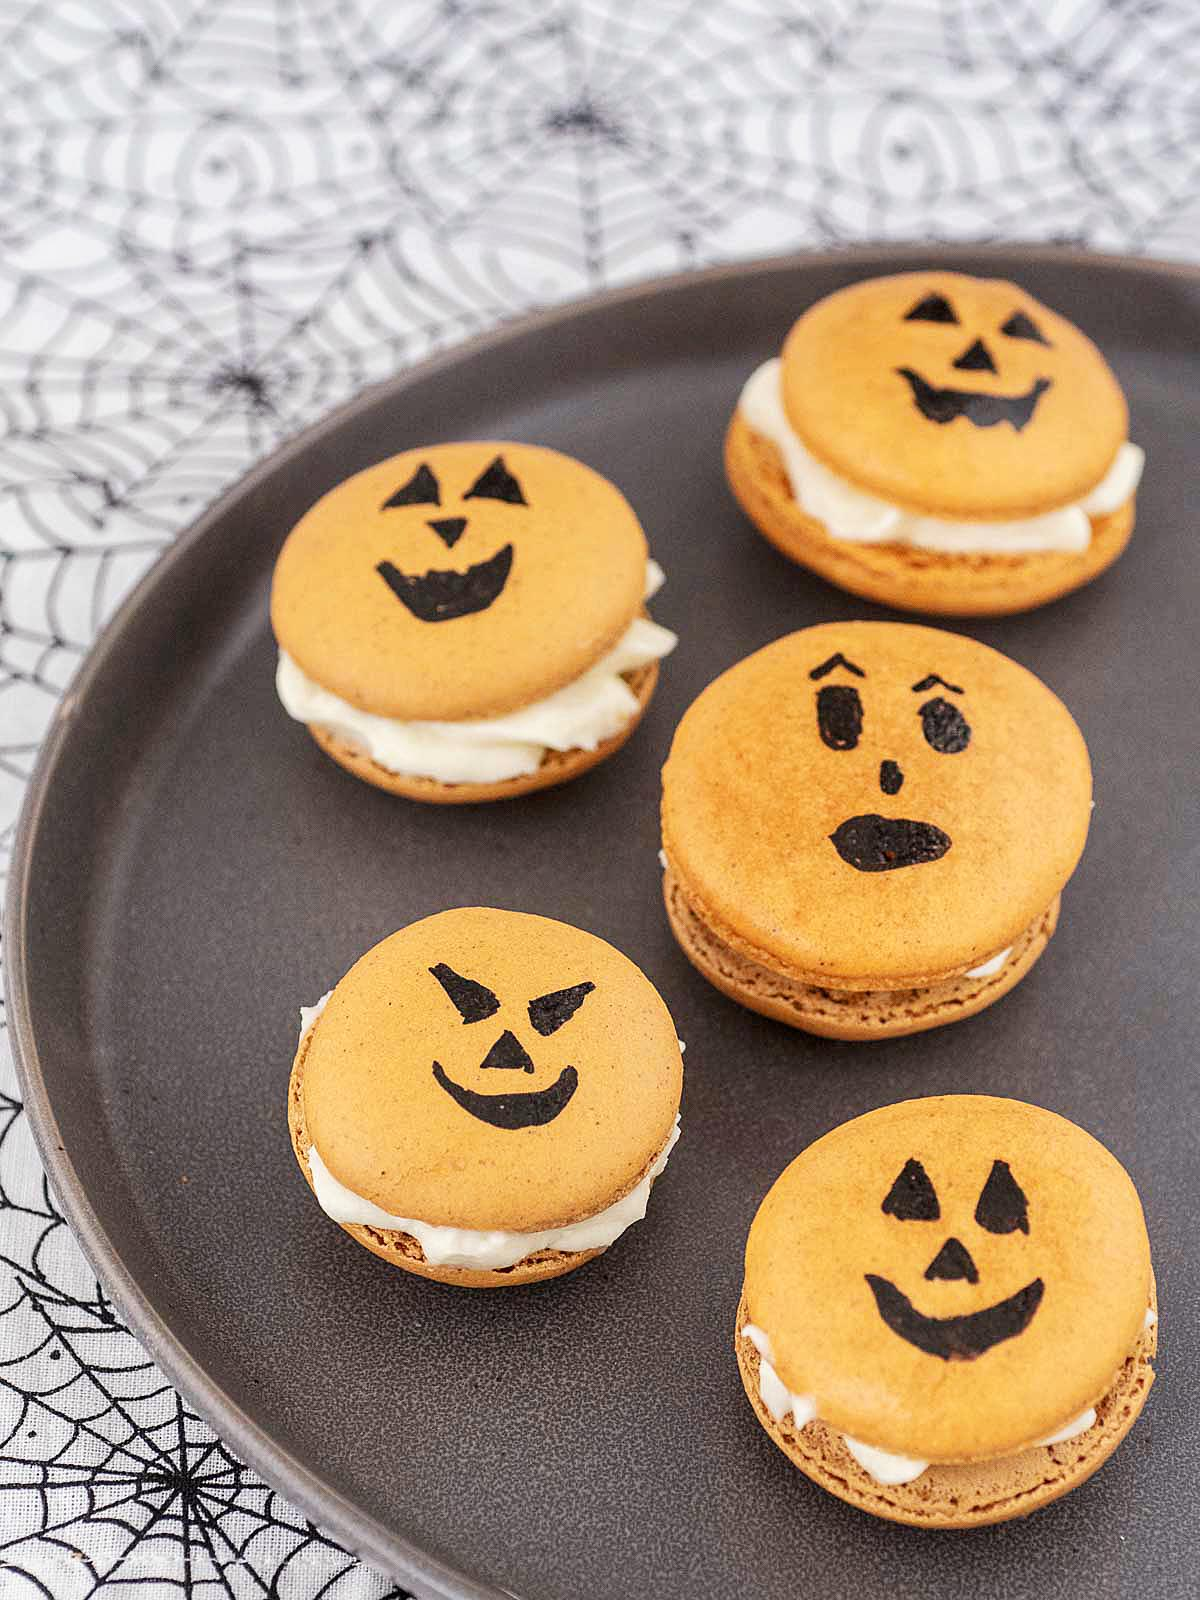 Five jack-o-lantern macarons on a black plate on a spiderweb tablecloth.